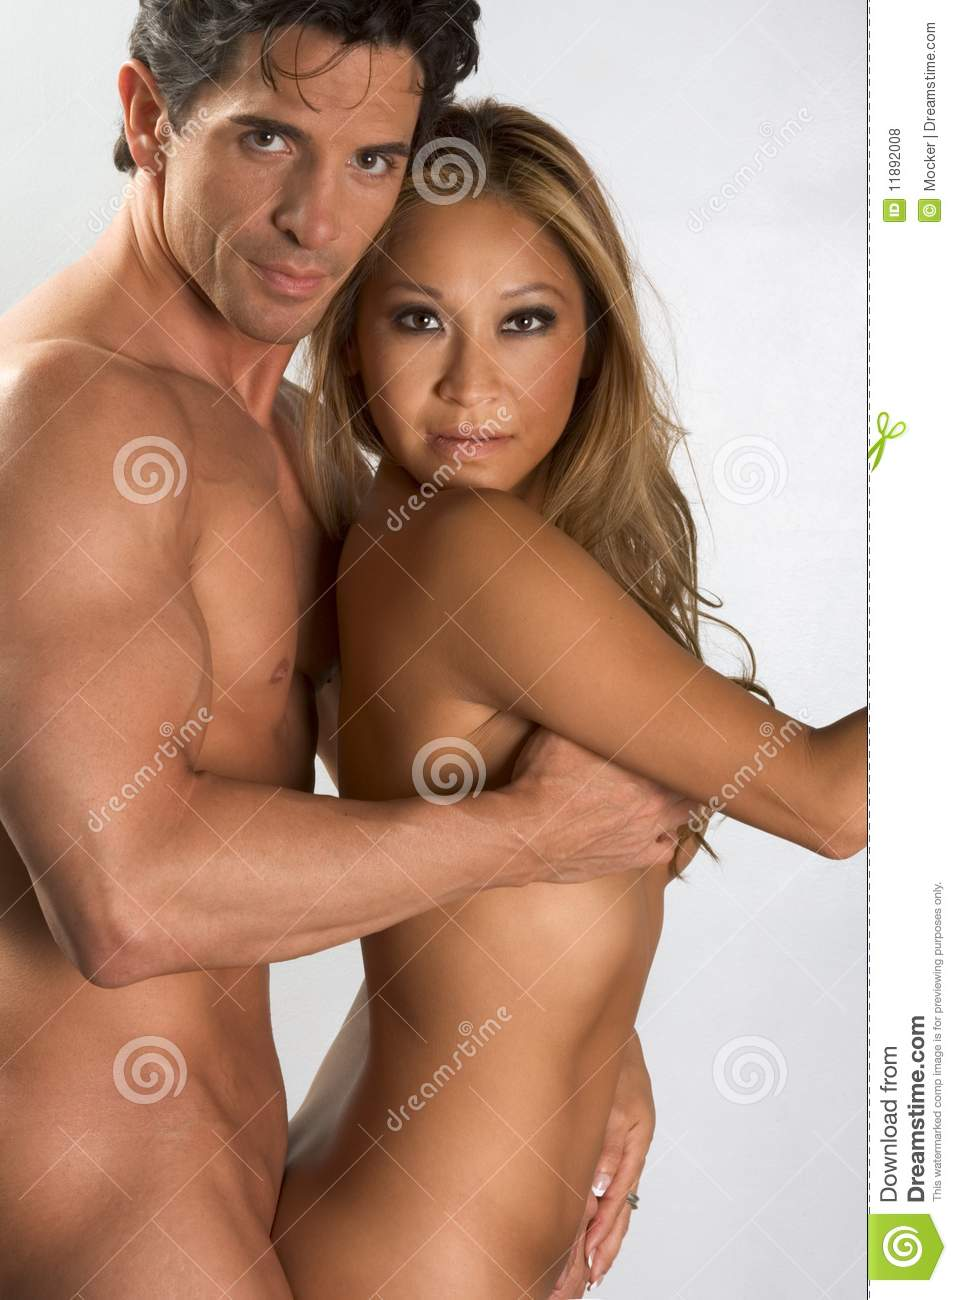 Couple Free asian and interracial sex movie yeah i'd